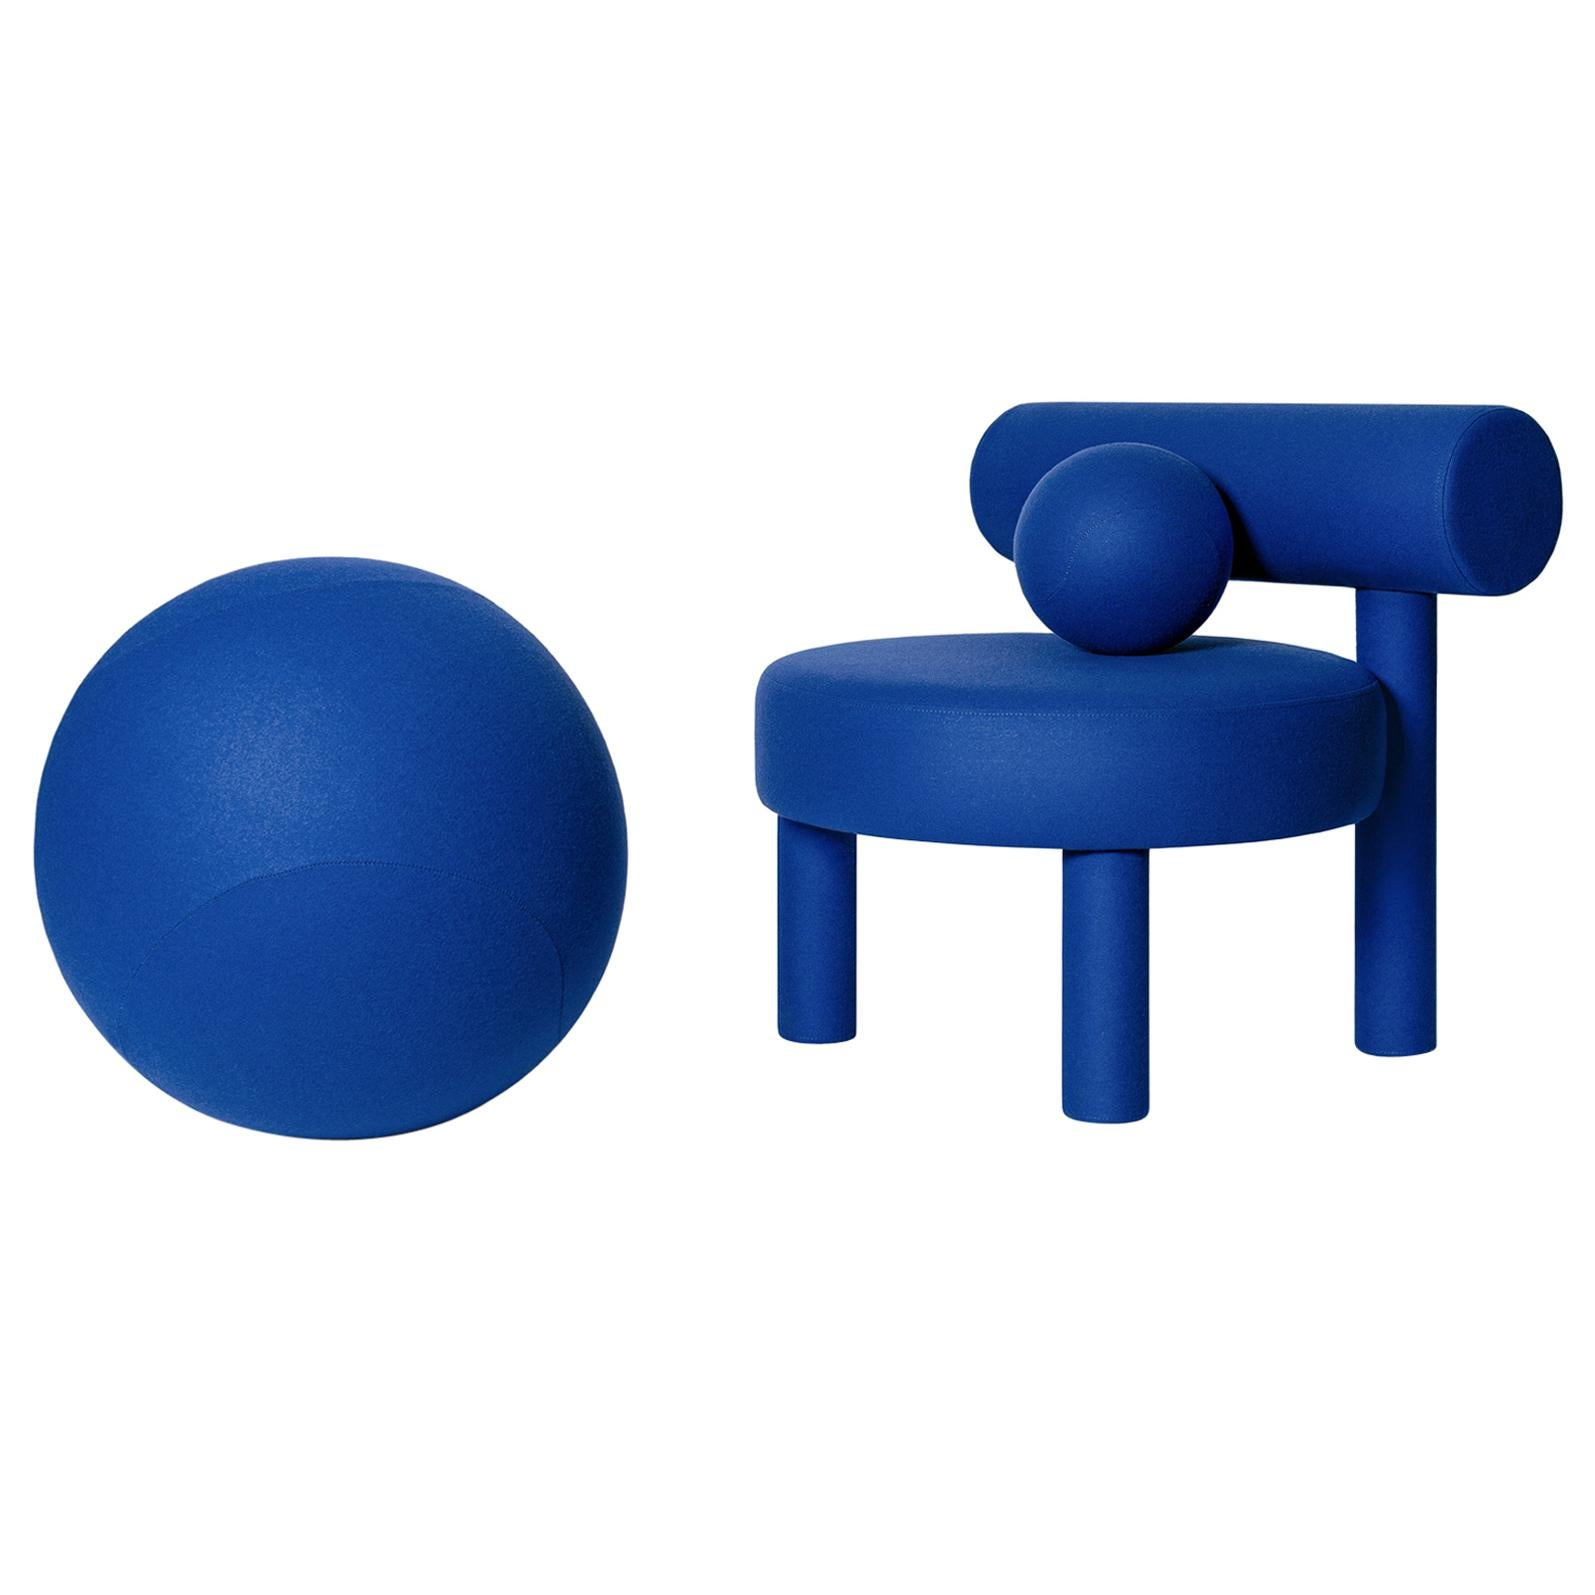 Blue Velvet Low Chair and Spheric Stool Set by NOOM